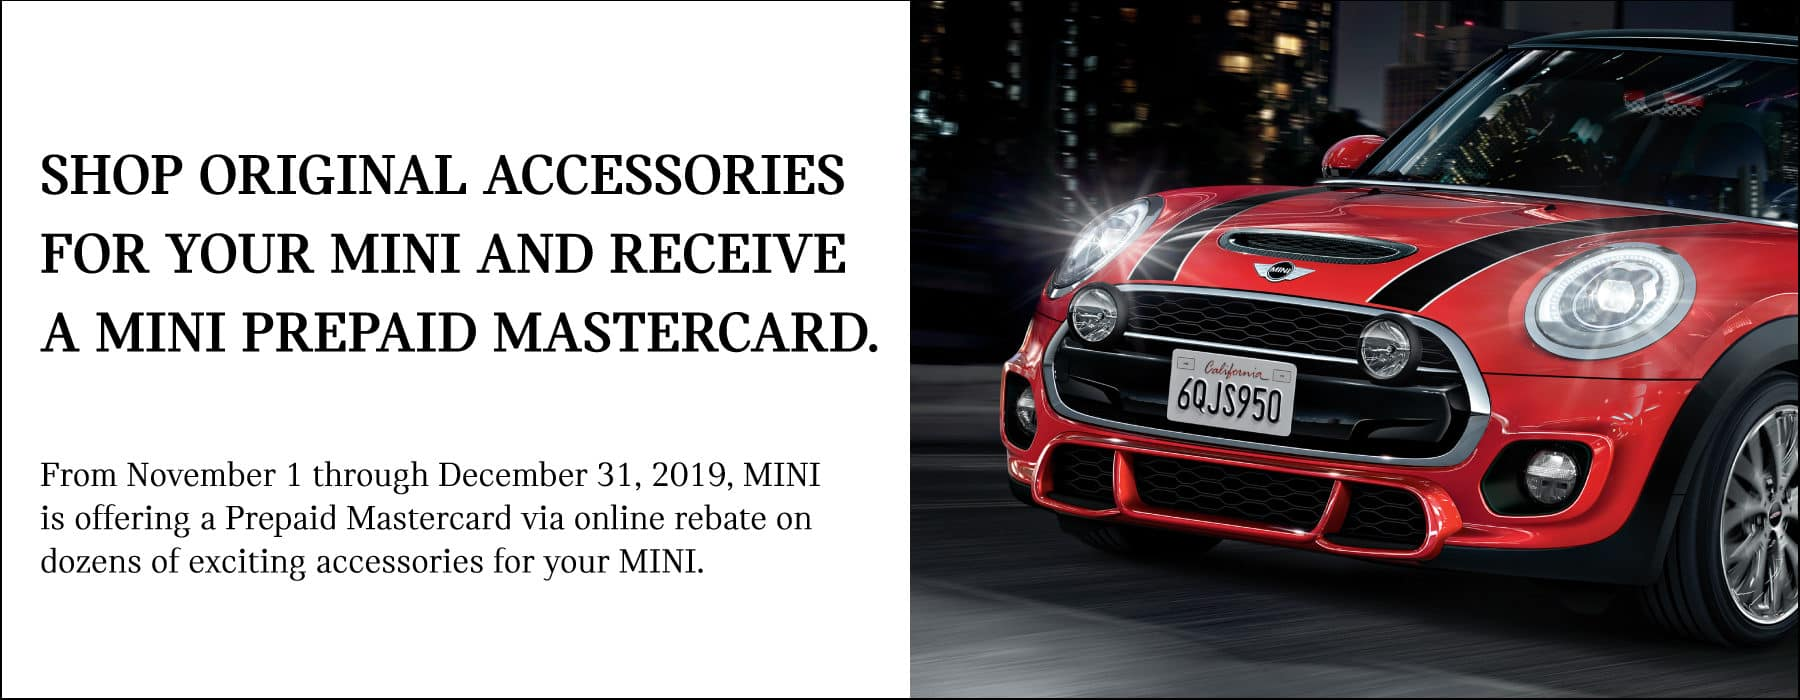 Shop original accessories for your MINI and receive a MINI prepaid Mastercard See dealer for complete details. Red MINI on city road at night